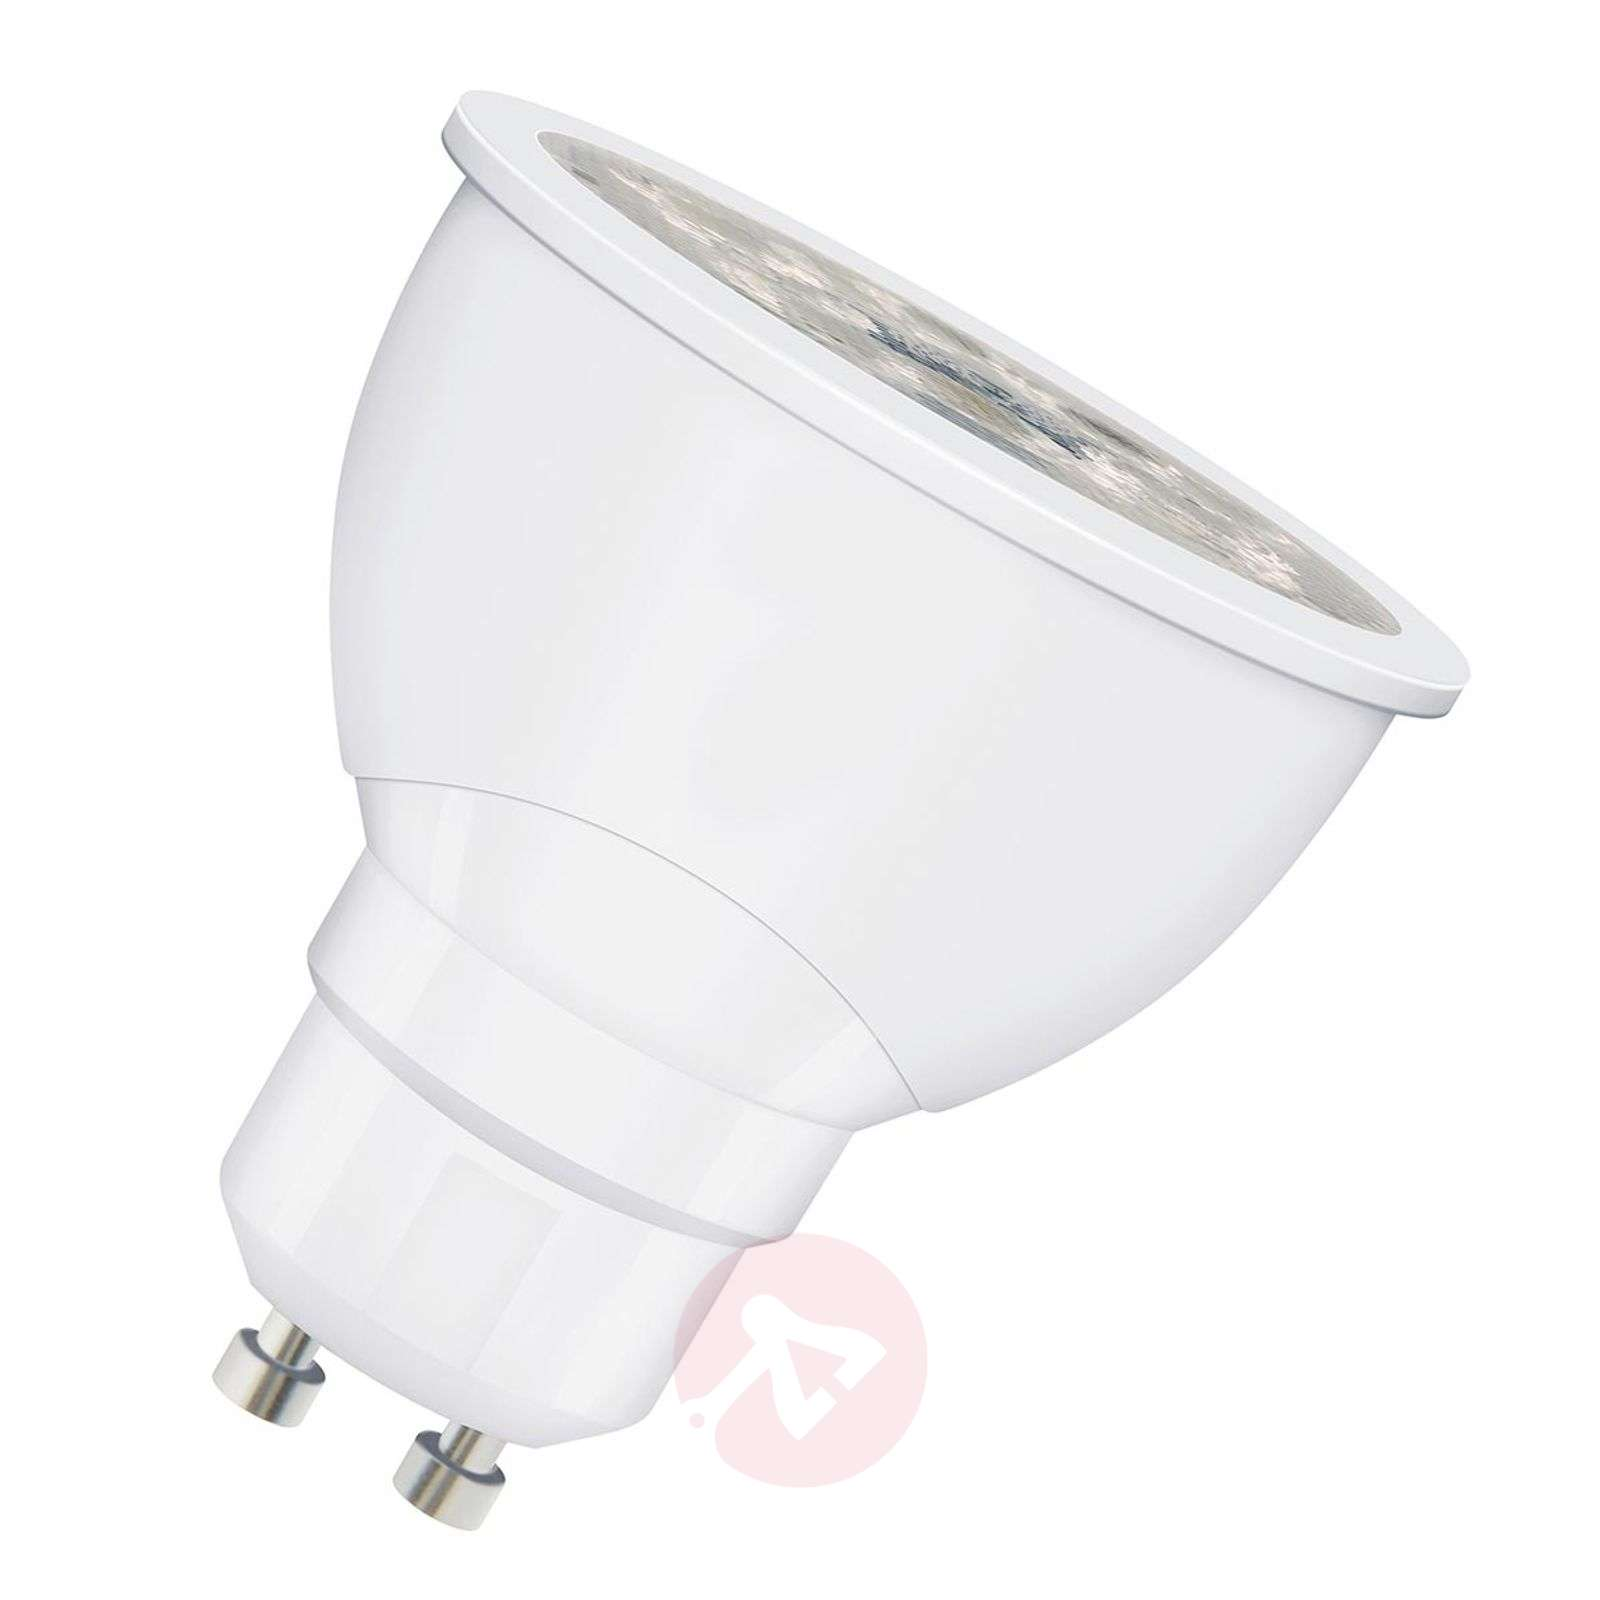 SMART+ LED GU10 4,5W, tunable white 800lm dimmable-7262127-01